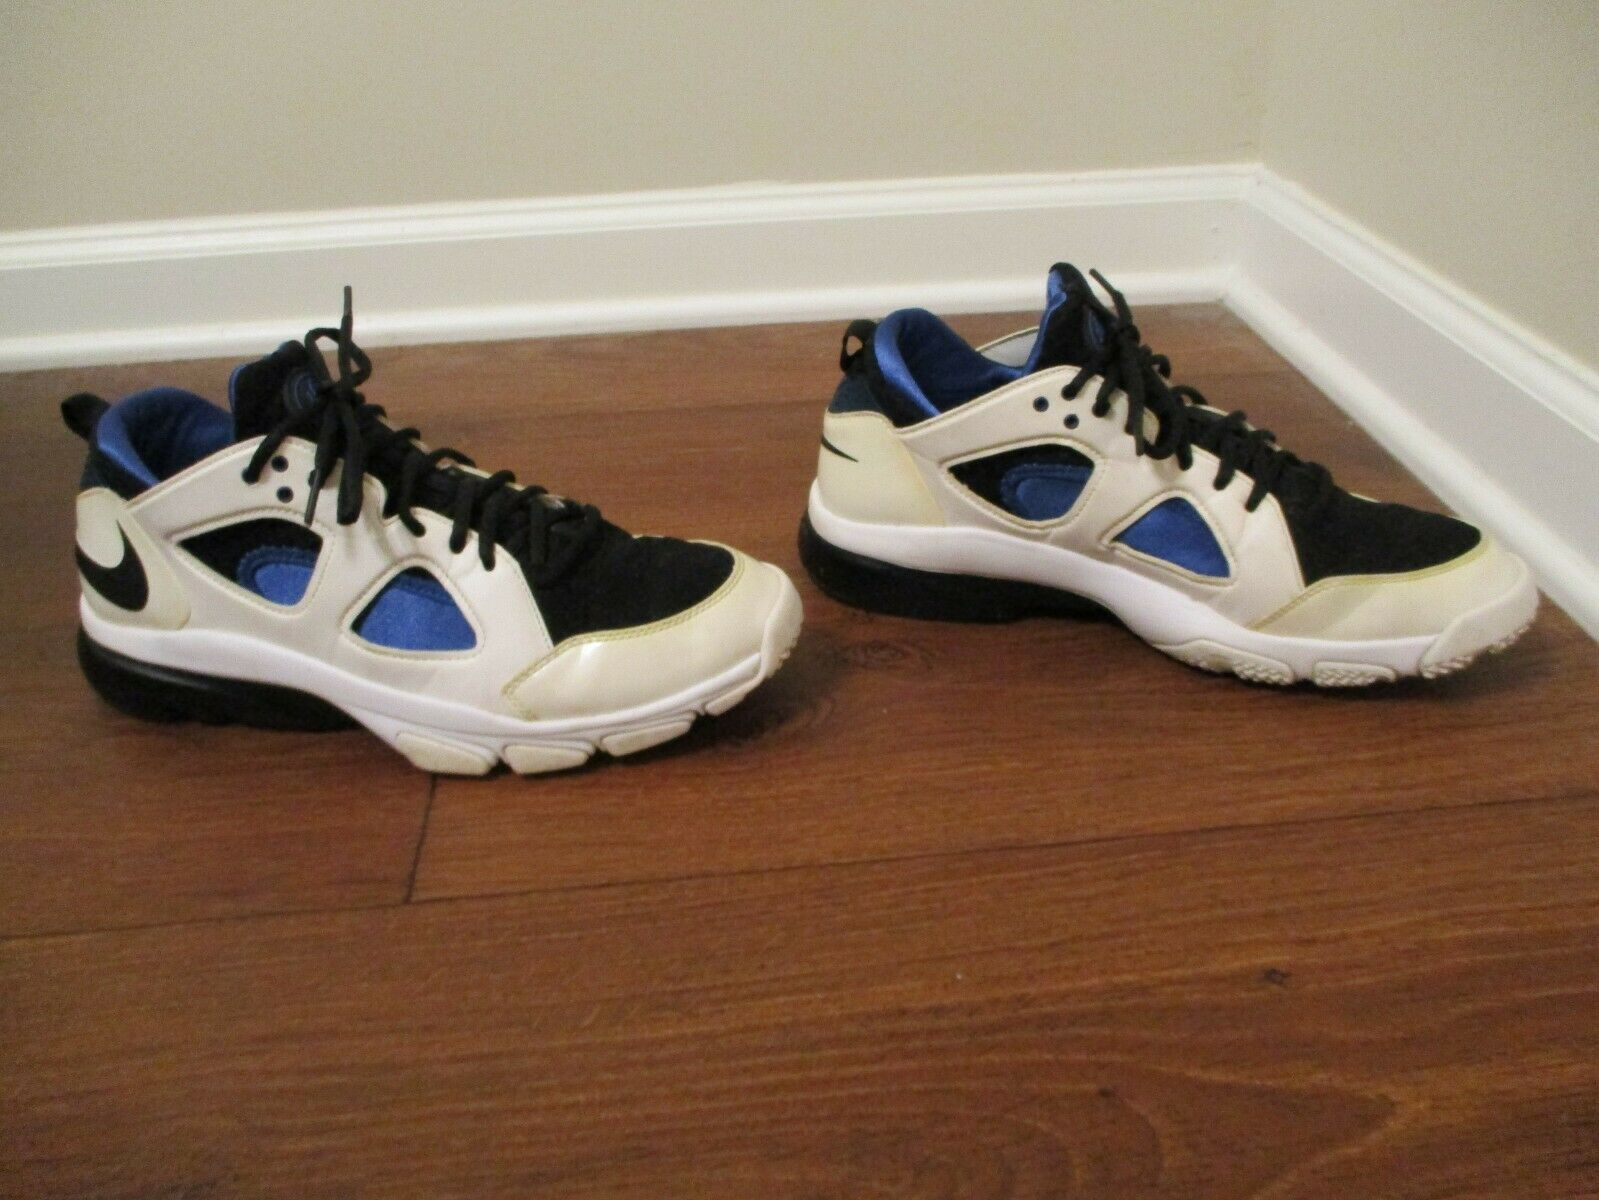 3ee194e6066 Used Worn Size 10.5 Nike Zoom Huarache Trainer Low shoes shoes shoes White  Black bluee 6ec3ff